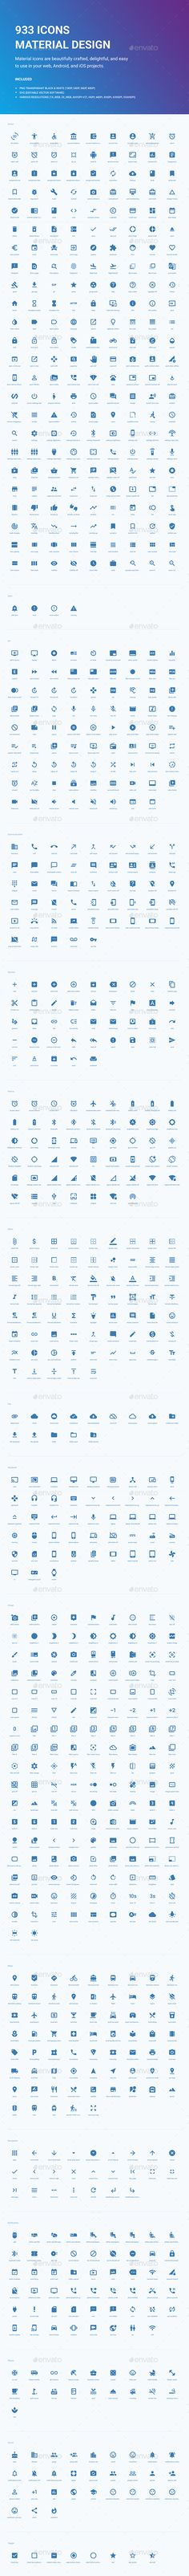 933 Icons Material Design - Icons for business, marketing, social media, UI and UX, finance and banking, navigation, mobile app, communication, action icons, management, SEO